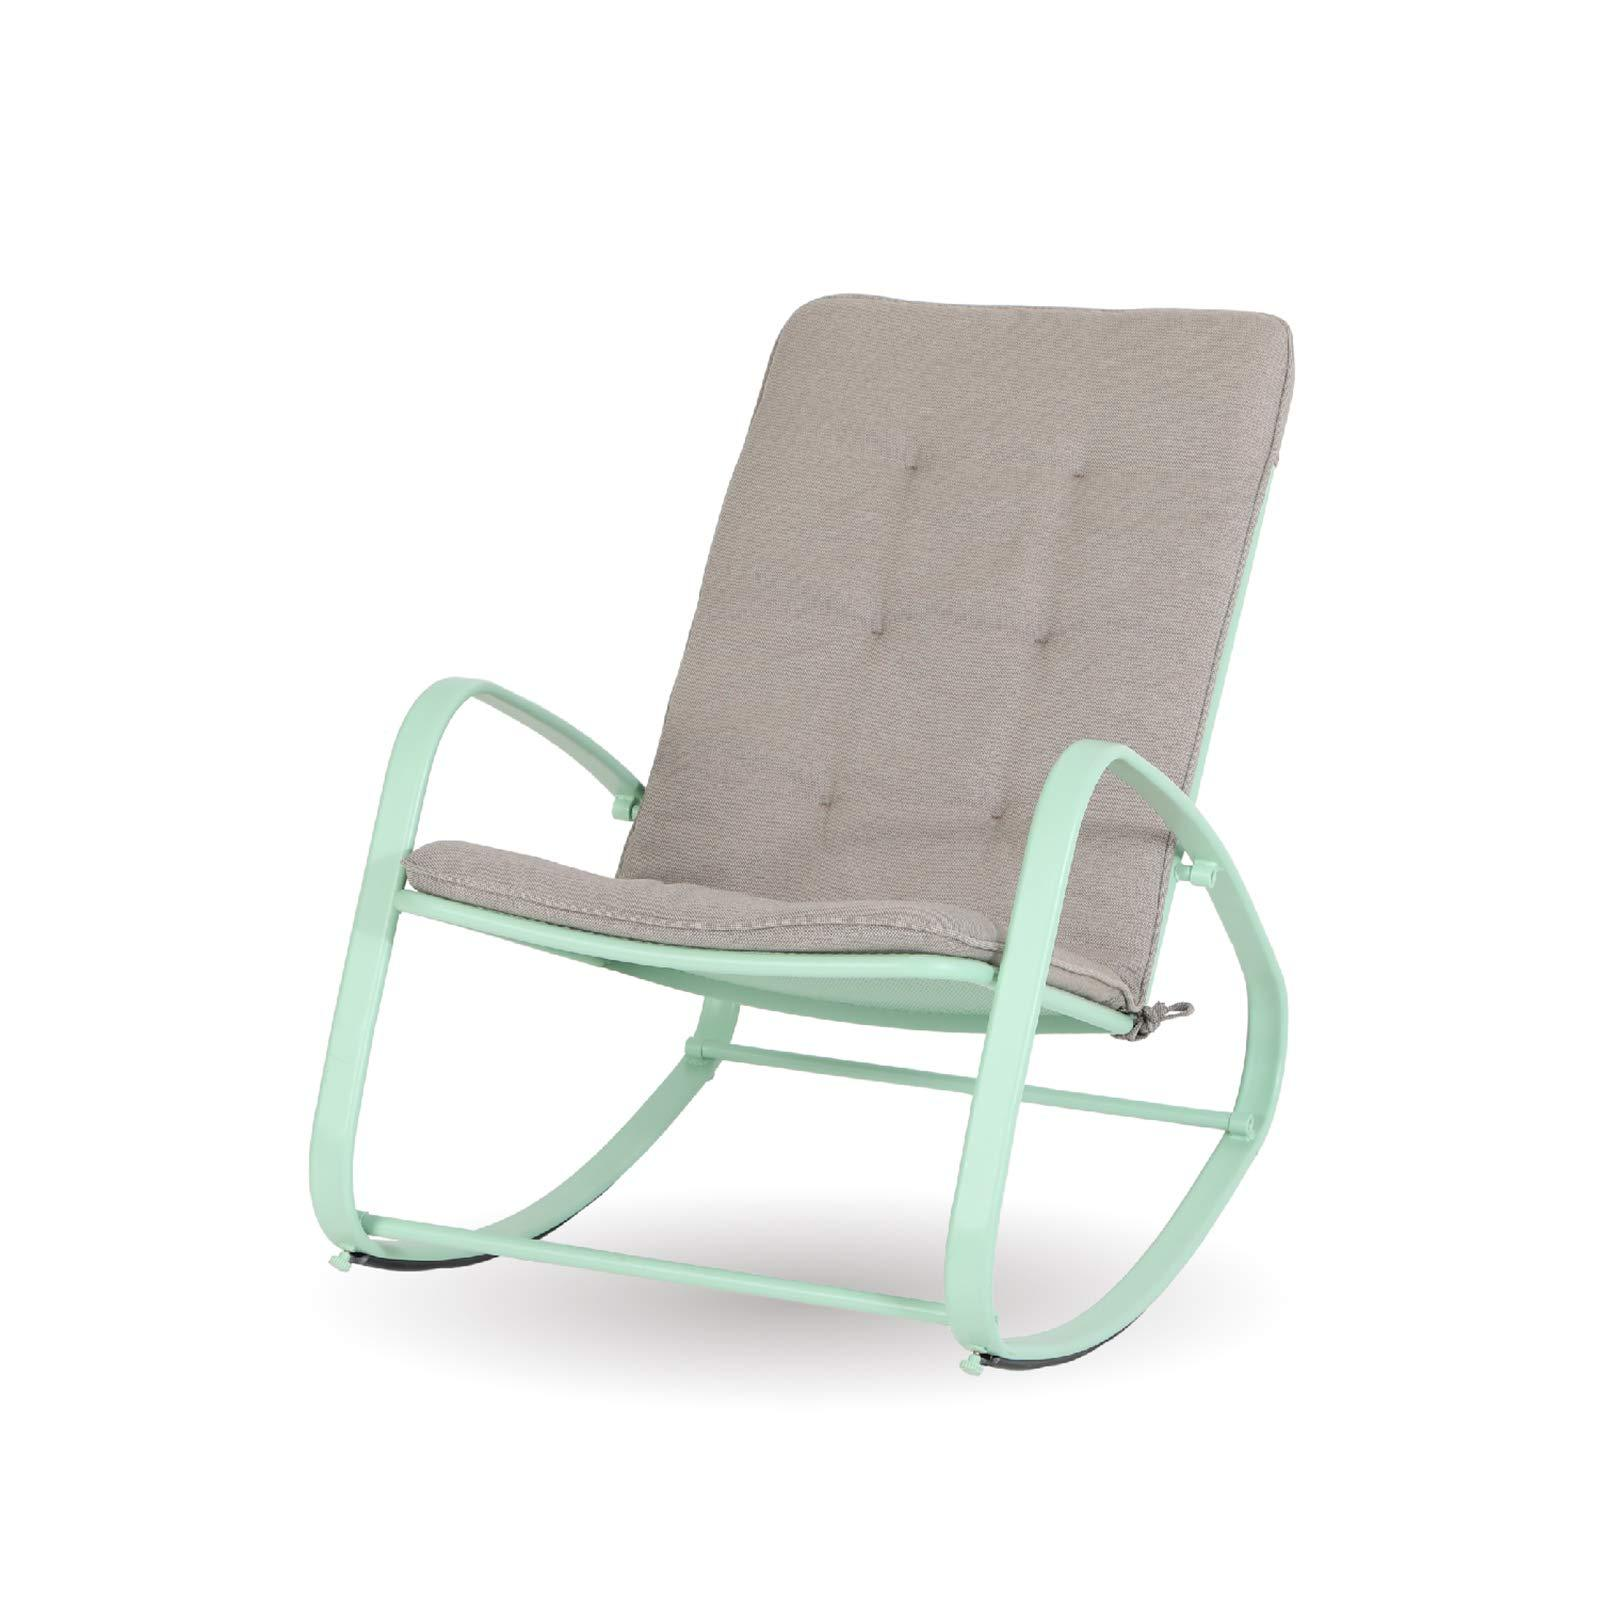 Sophia & William Outdoor Patio Rocking Chair Padded Steel Rocker Chairs Support 300lbs Green